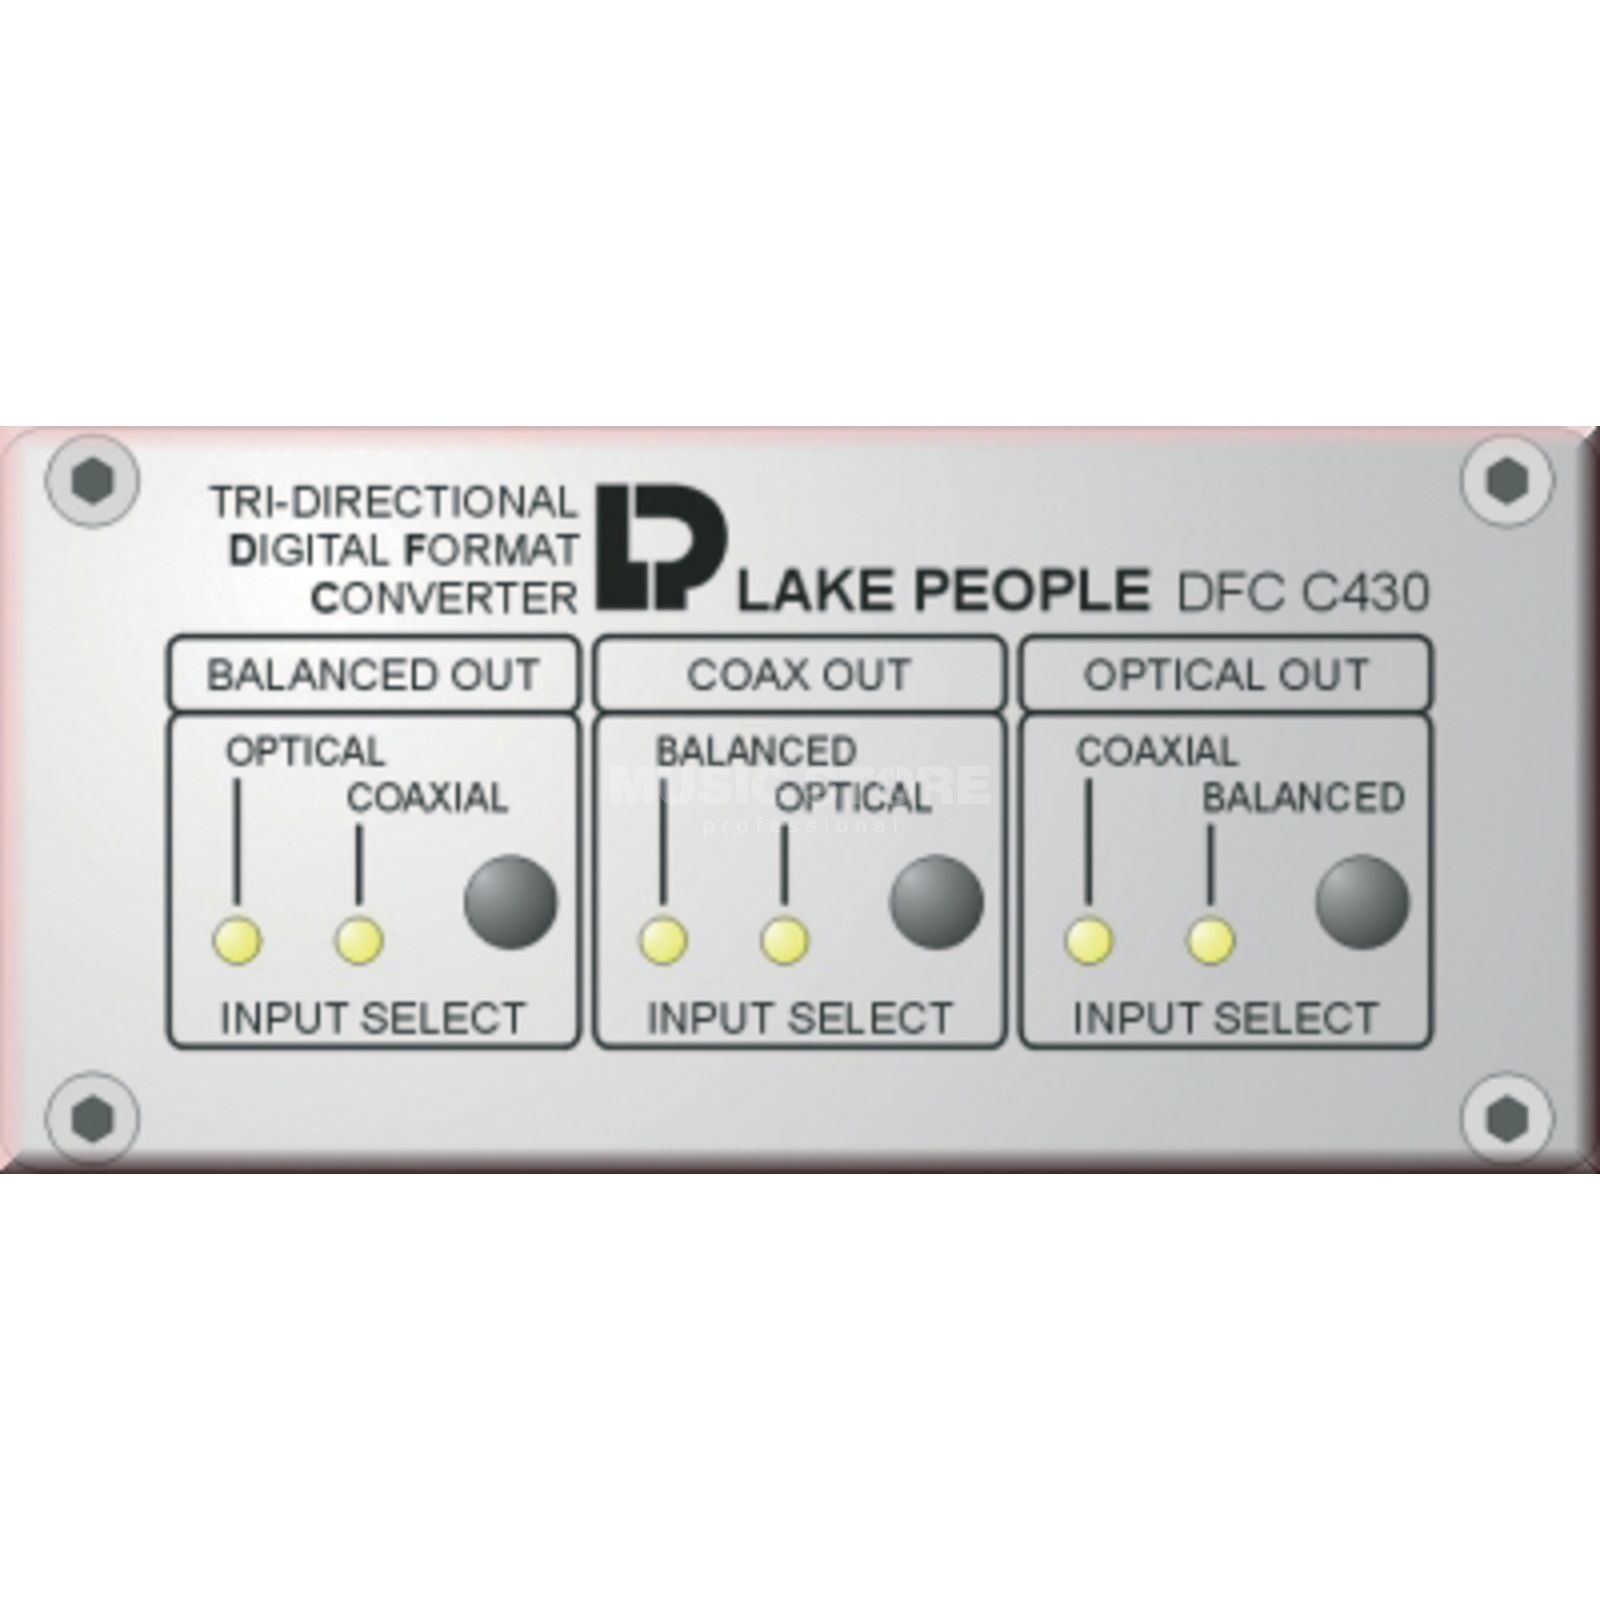 Lake People DFC C430 Digital Format Converter Produktbillede